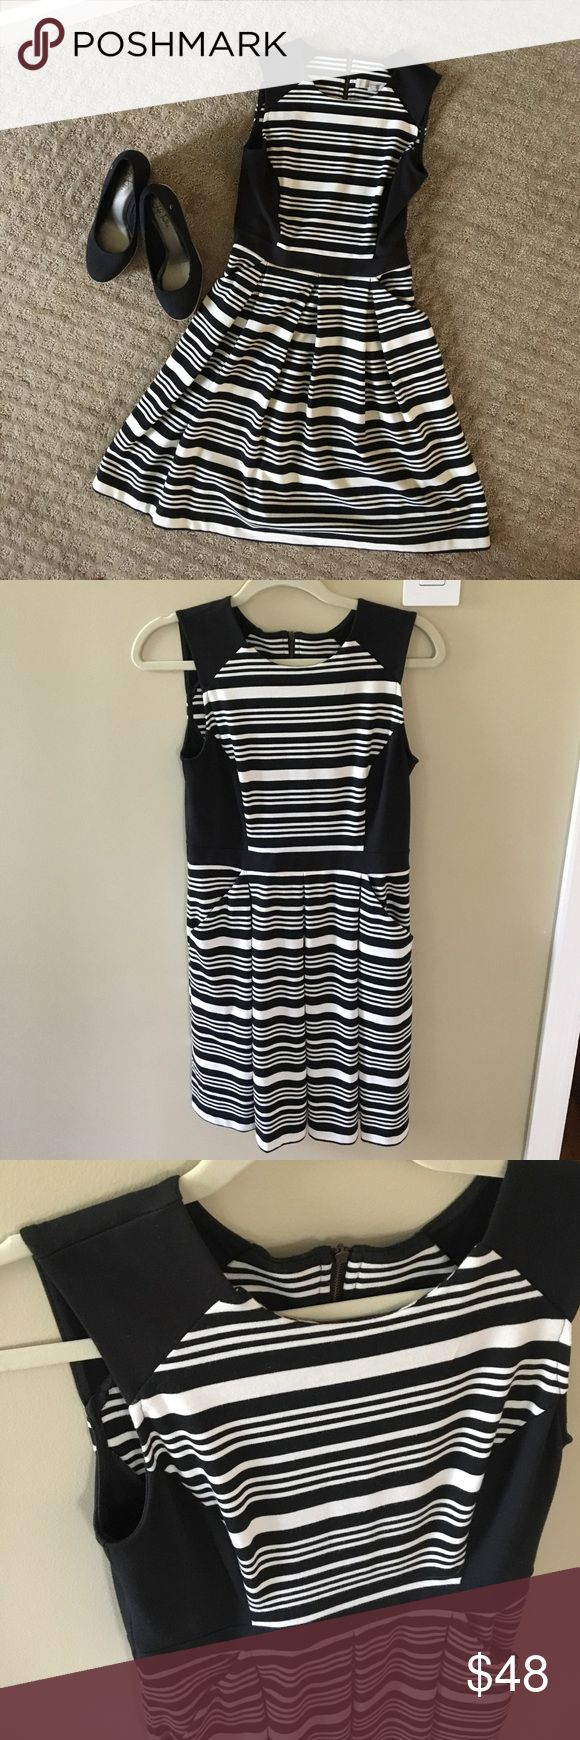 Striped LOFT dress Worn only a handful of times, black and off white LOFT dress in size 0. Adorable zipper on back and side pockets!! LOFT Dresses Midi